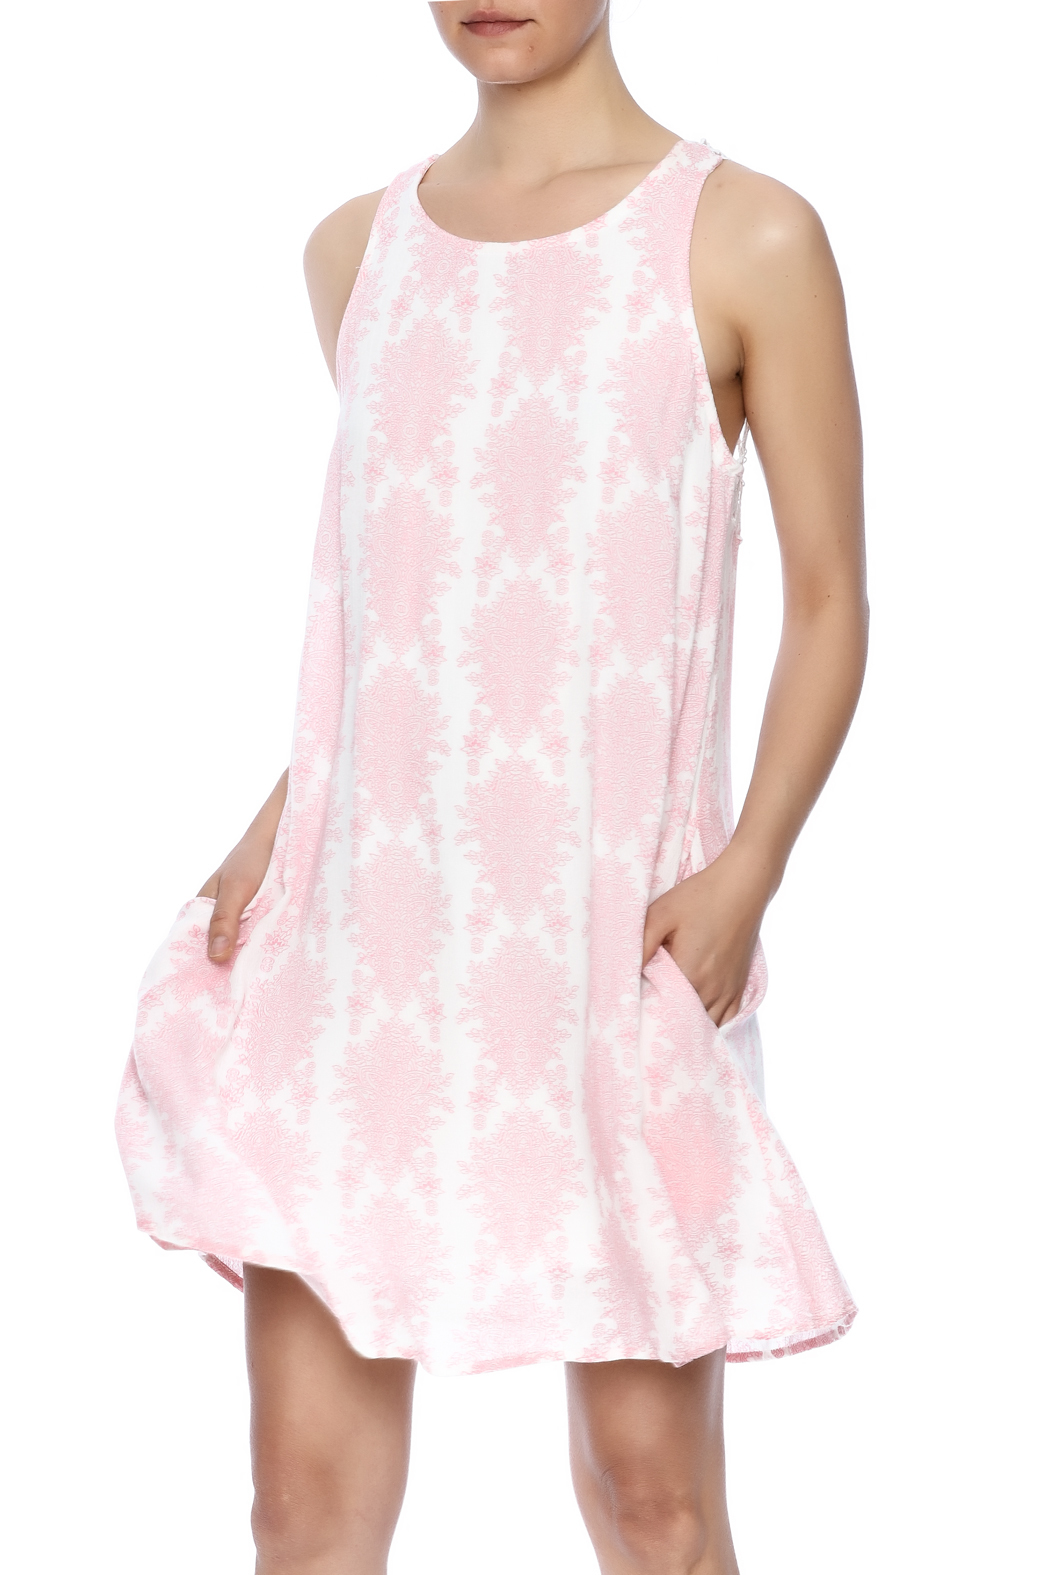 70130d016e6 Entro Pretty In Pink Dress from Buffalo by BeBe Mills — Shoptiques